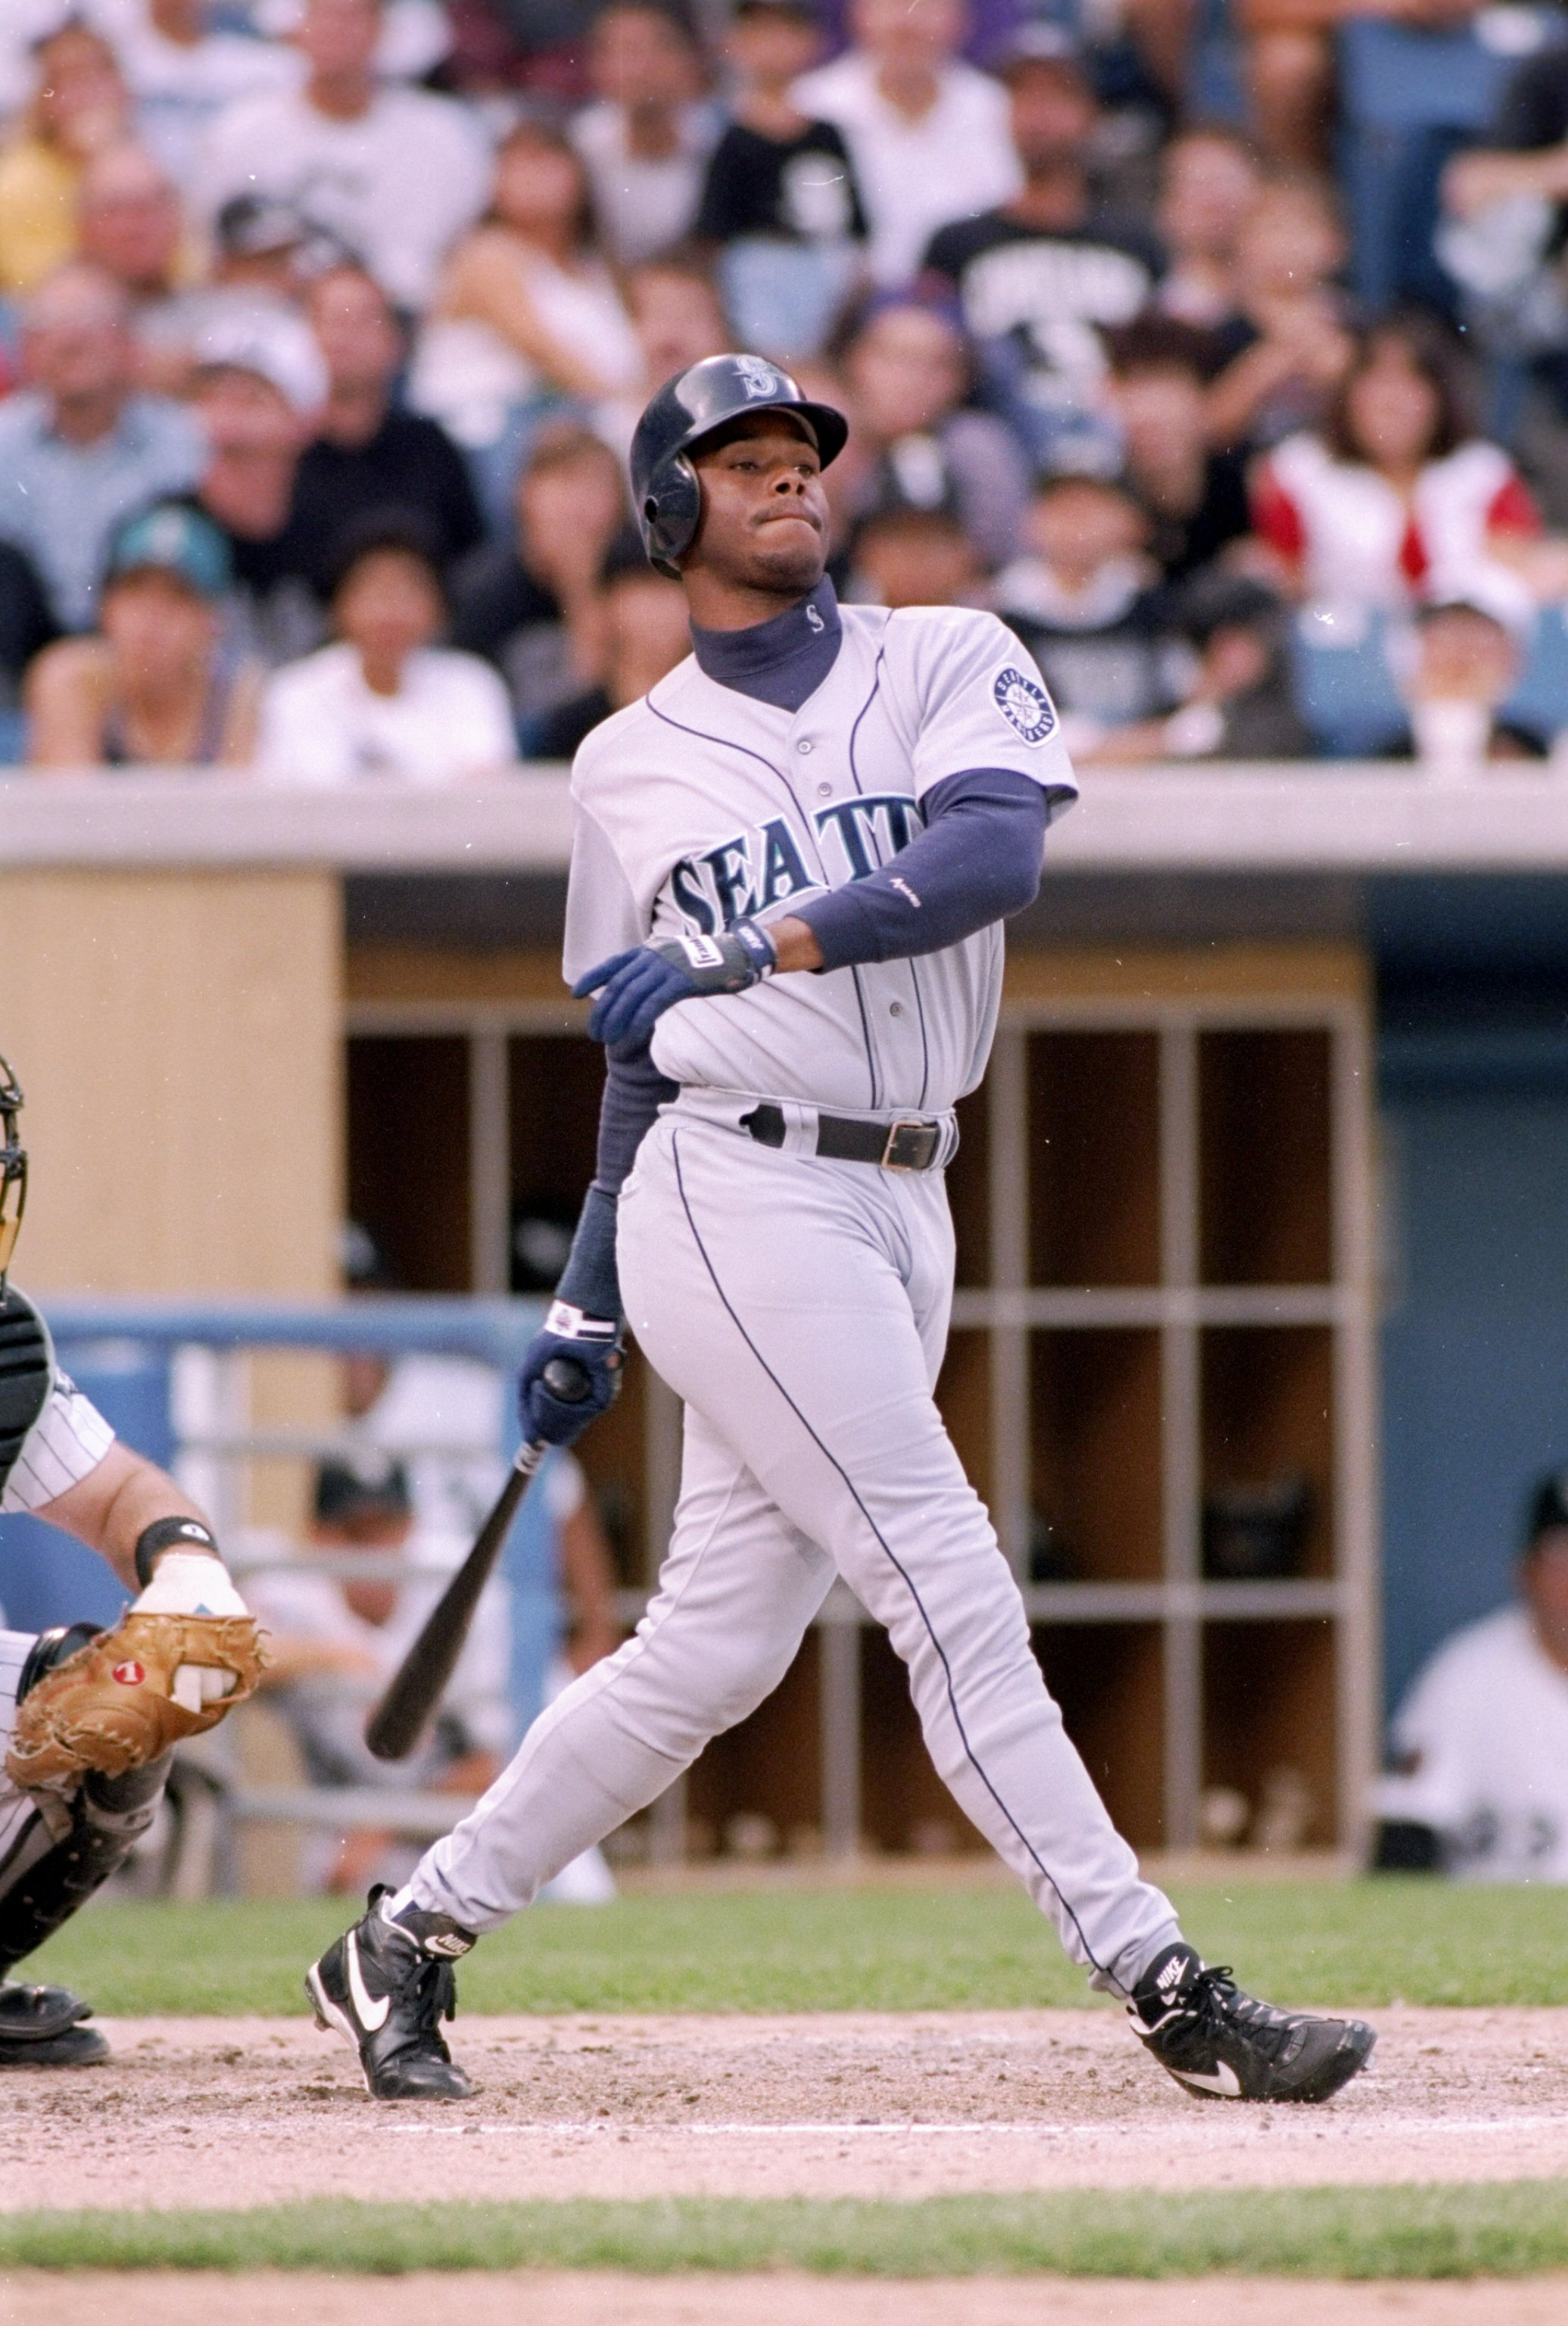 Ken Griffey Jr. always had one of the sweetest swings in the game